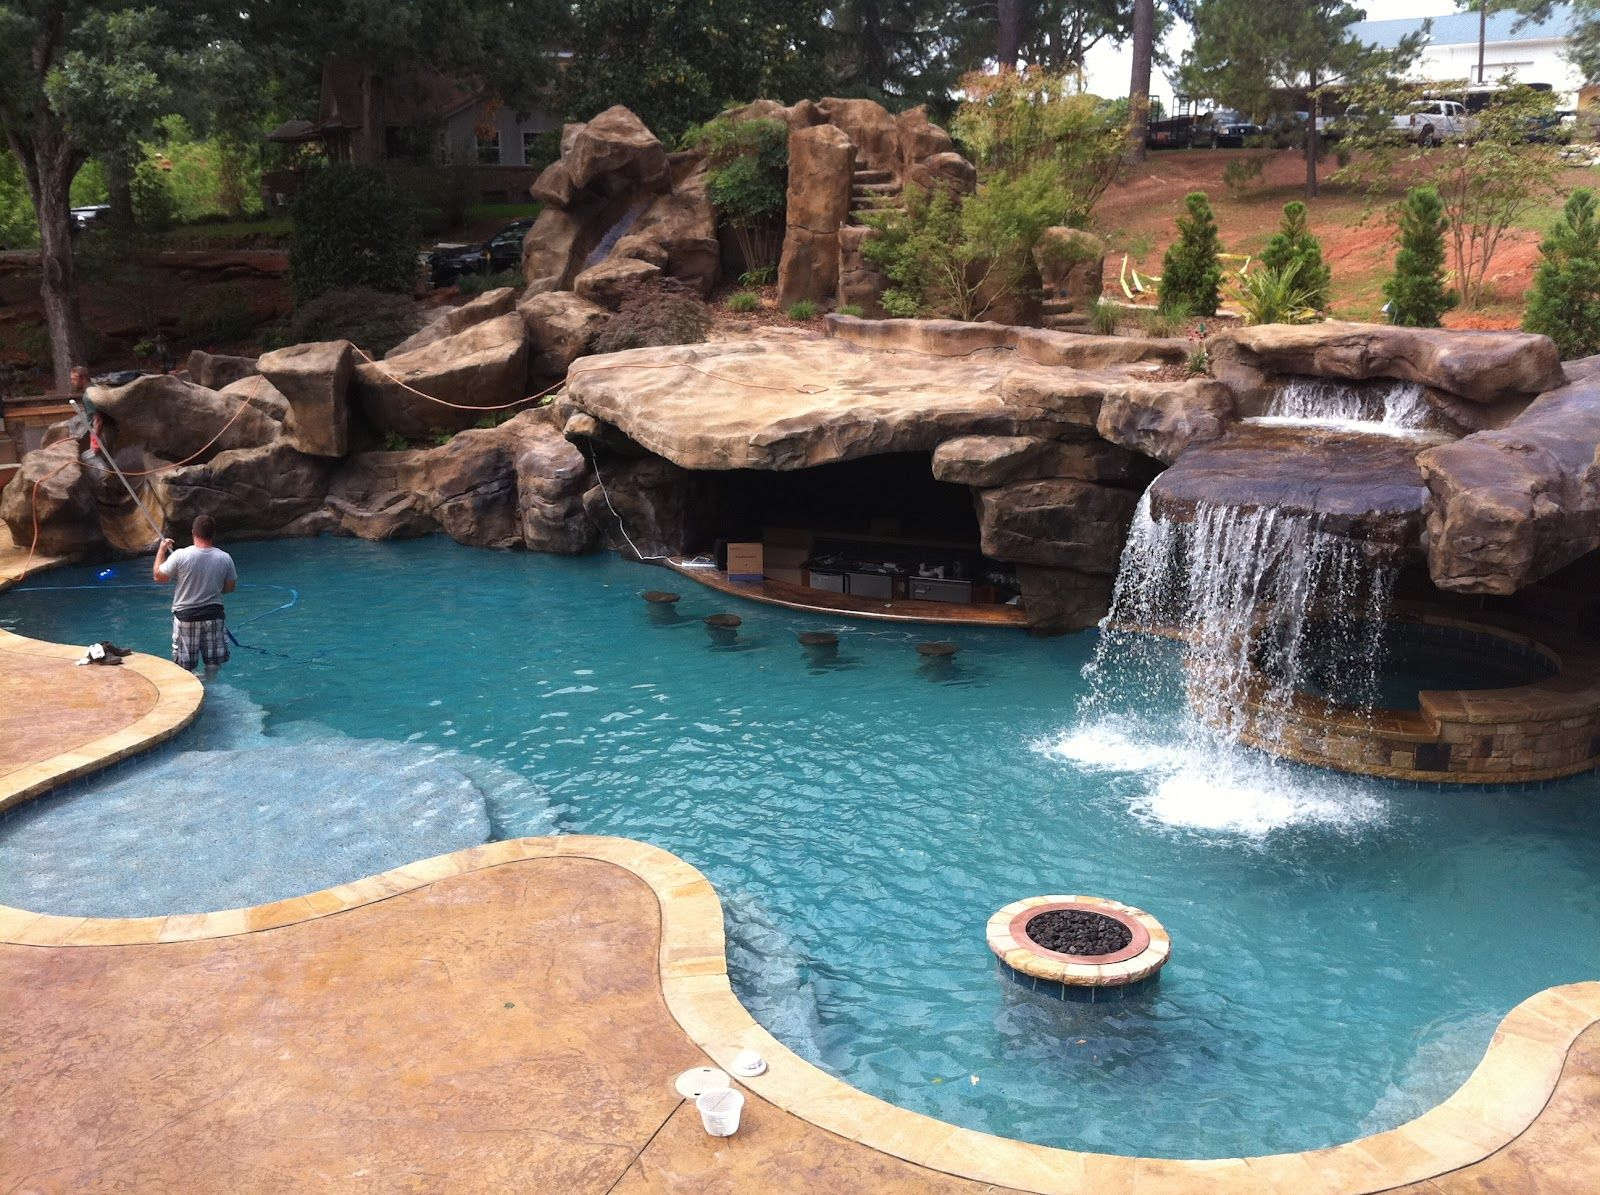 Charmant Build Your Backyard Pools Following The Curve Of The Two Hills And Then You  Can Assemble